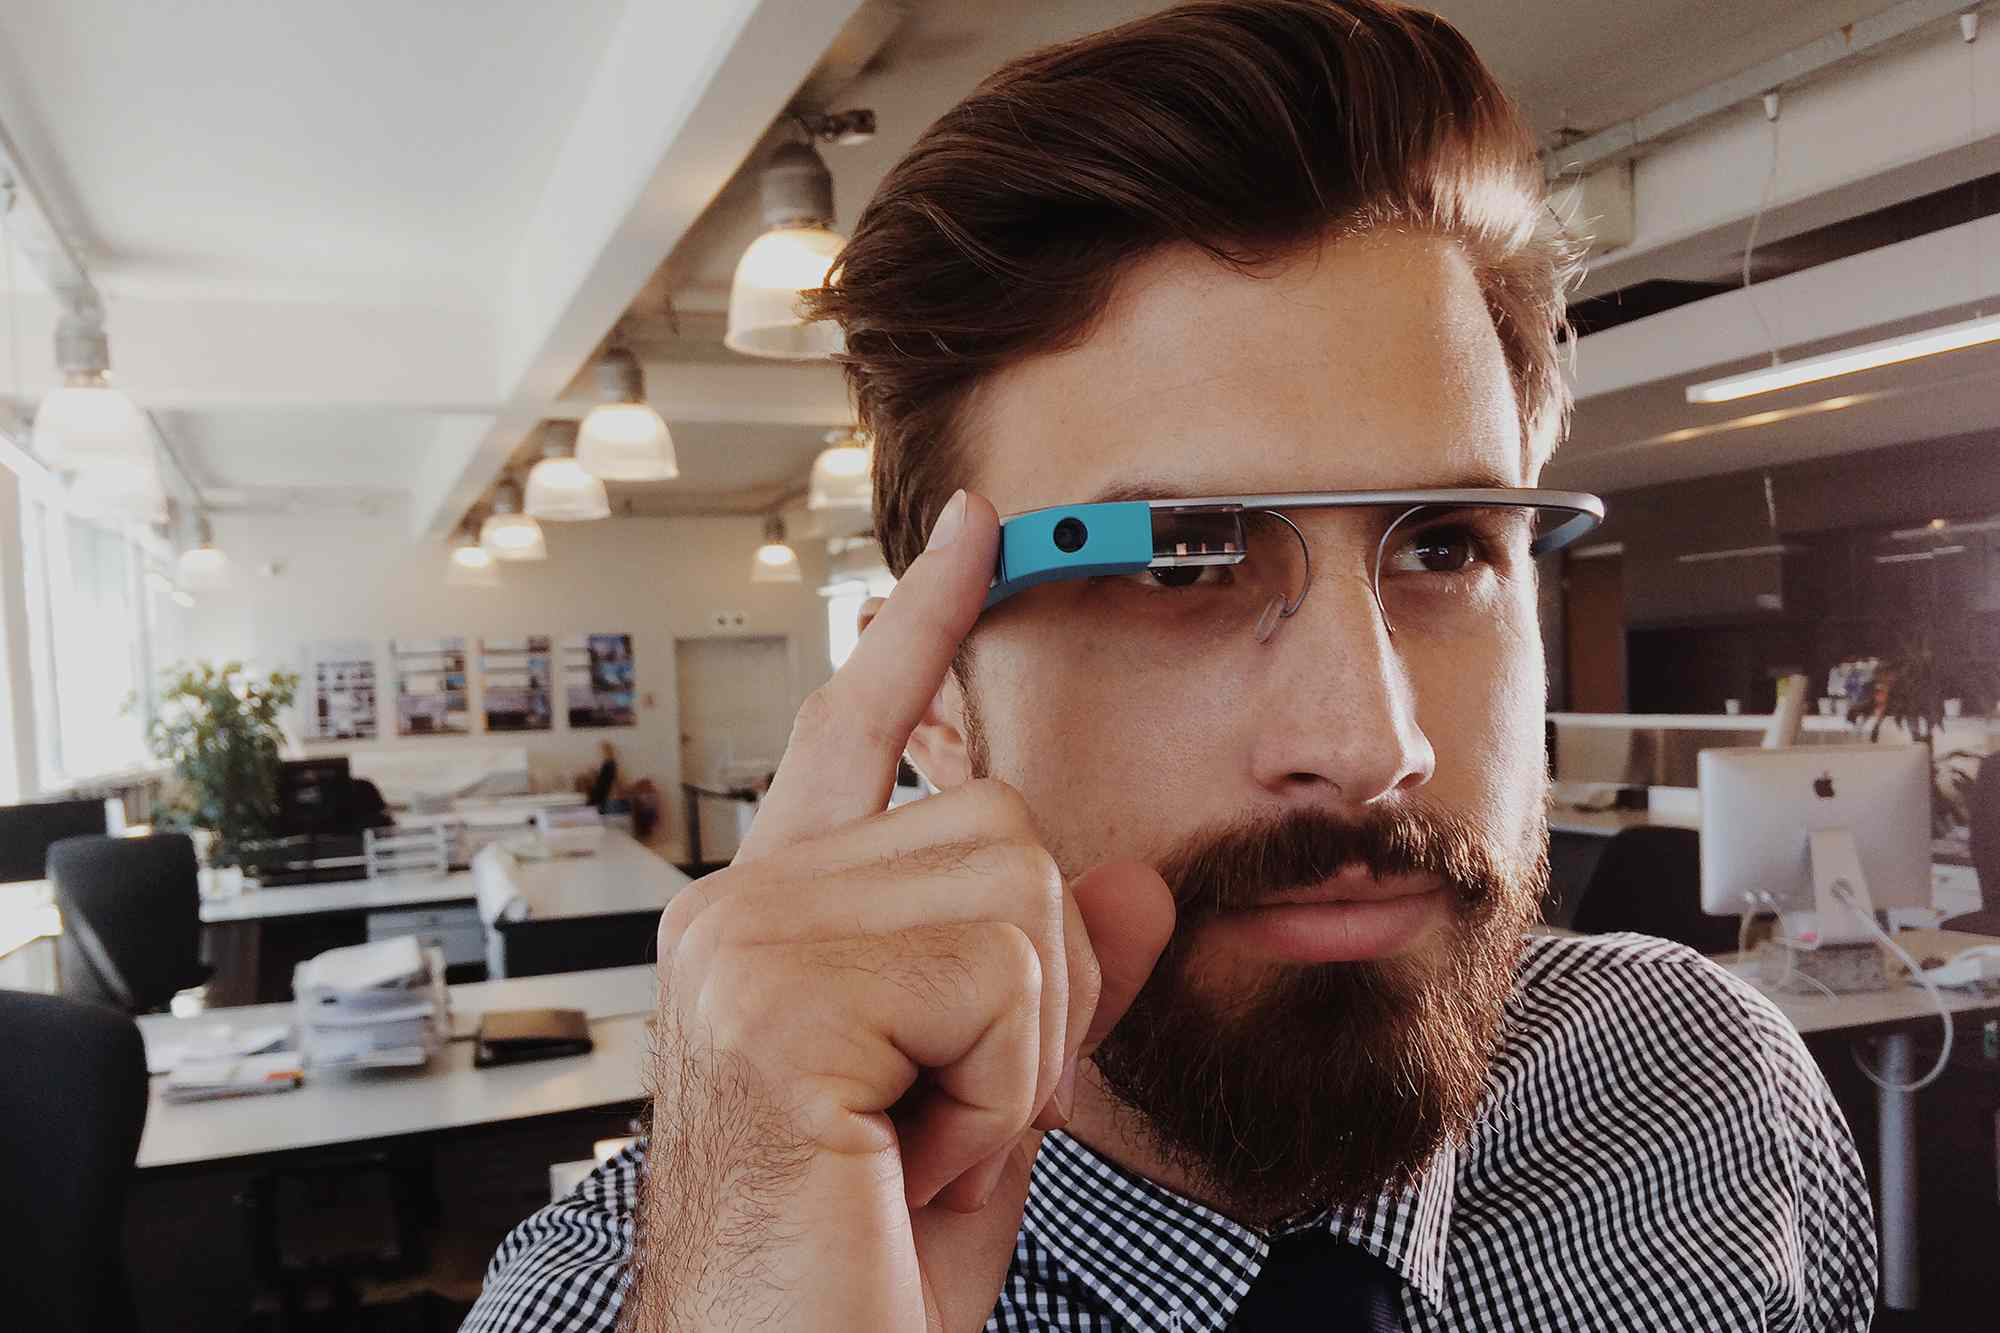 Google glass being worn by a man in a open office setting